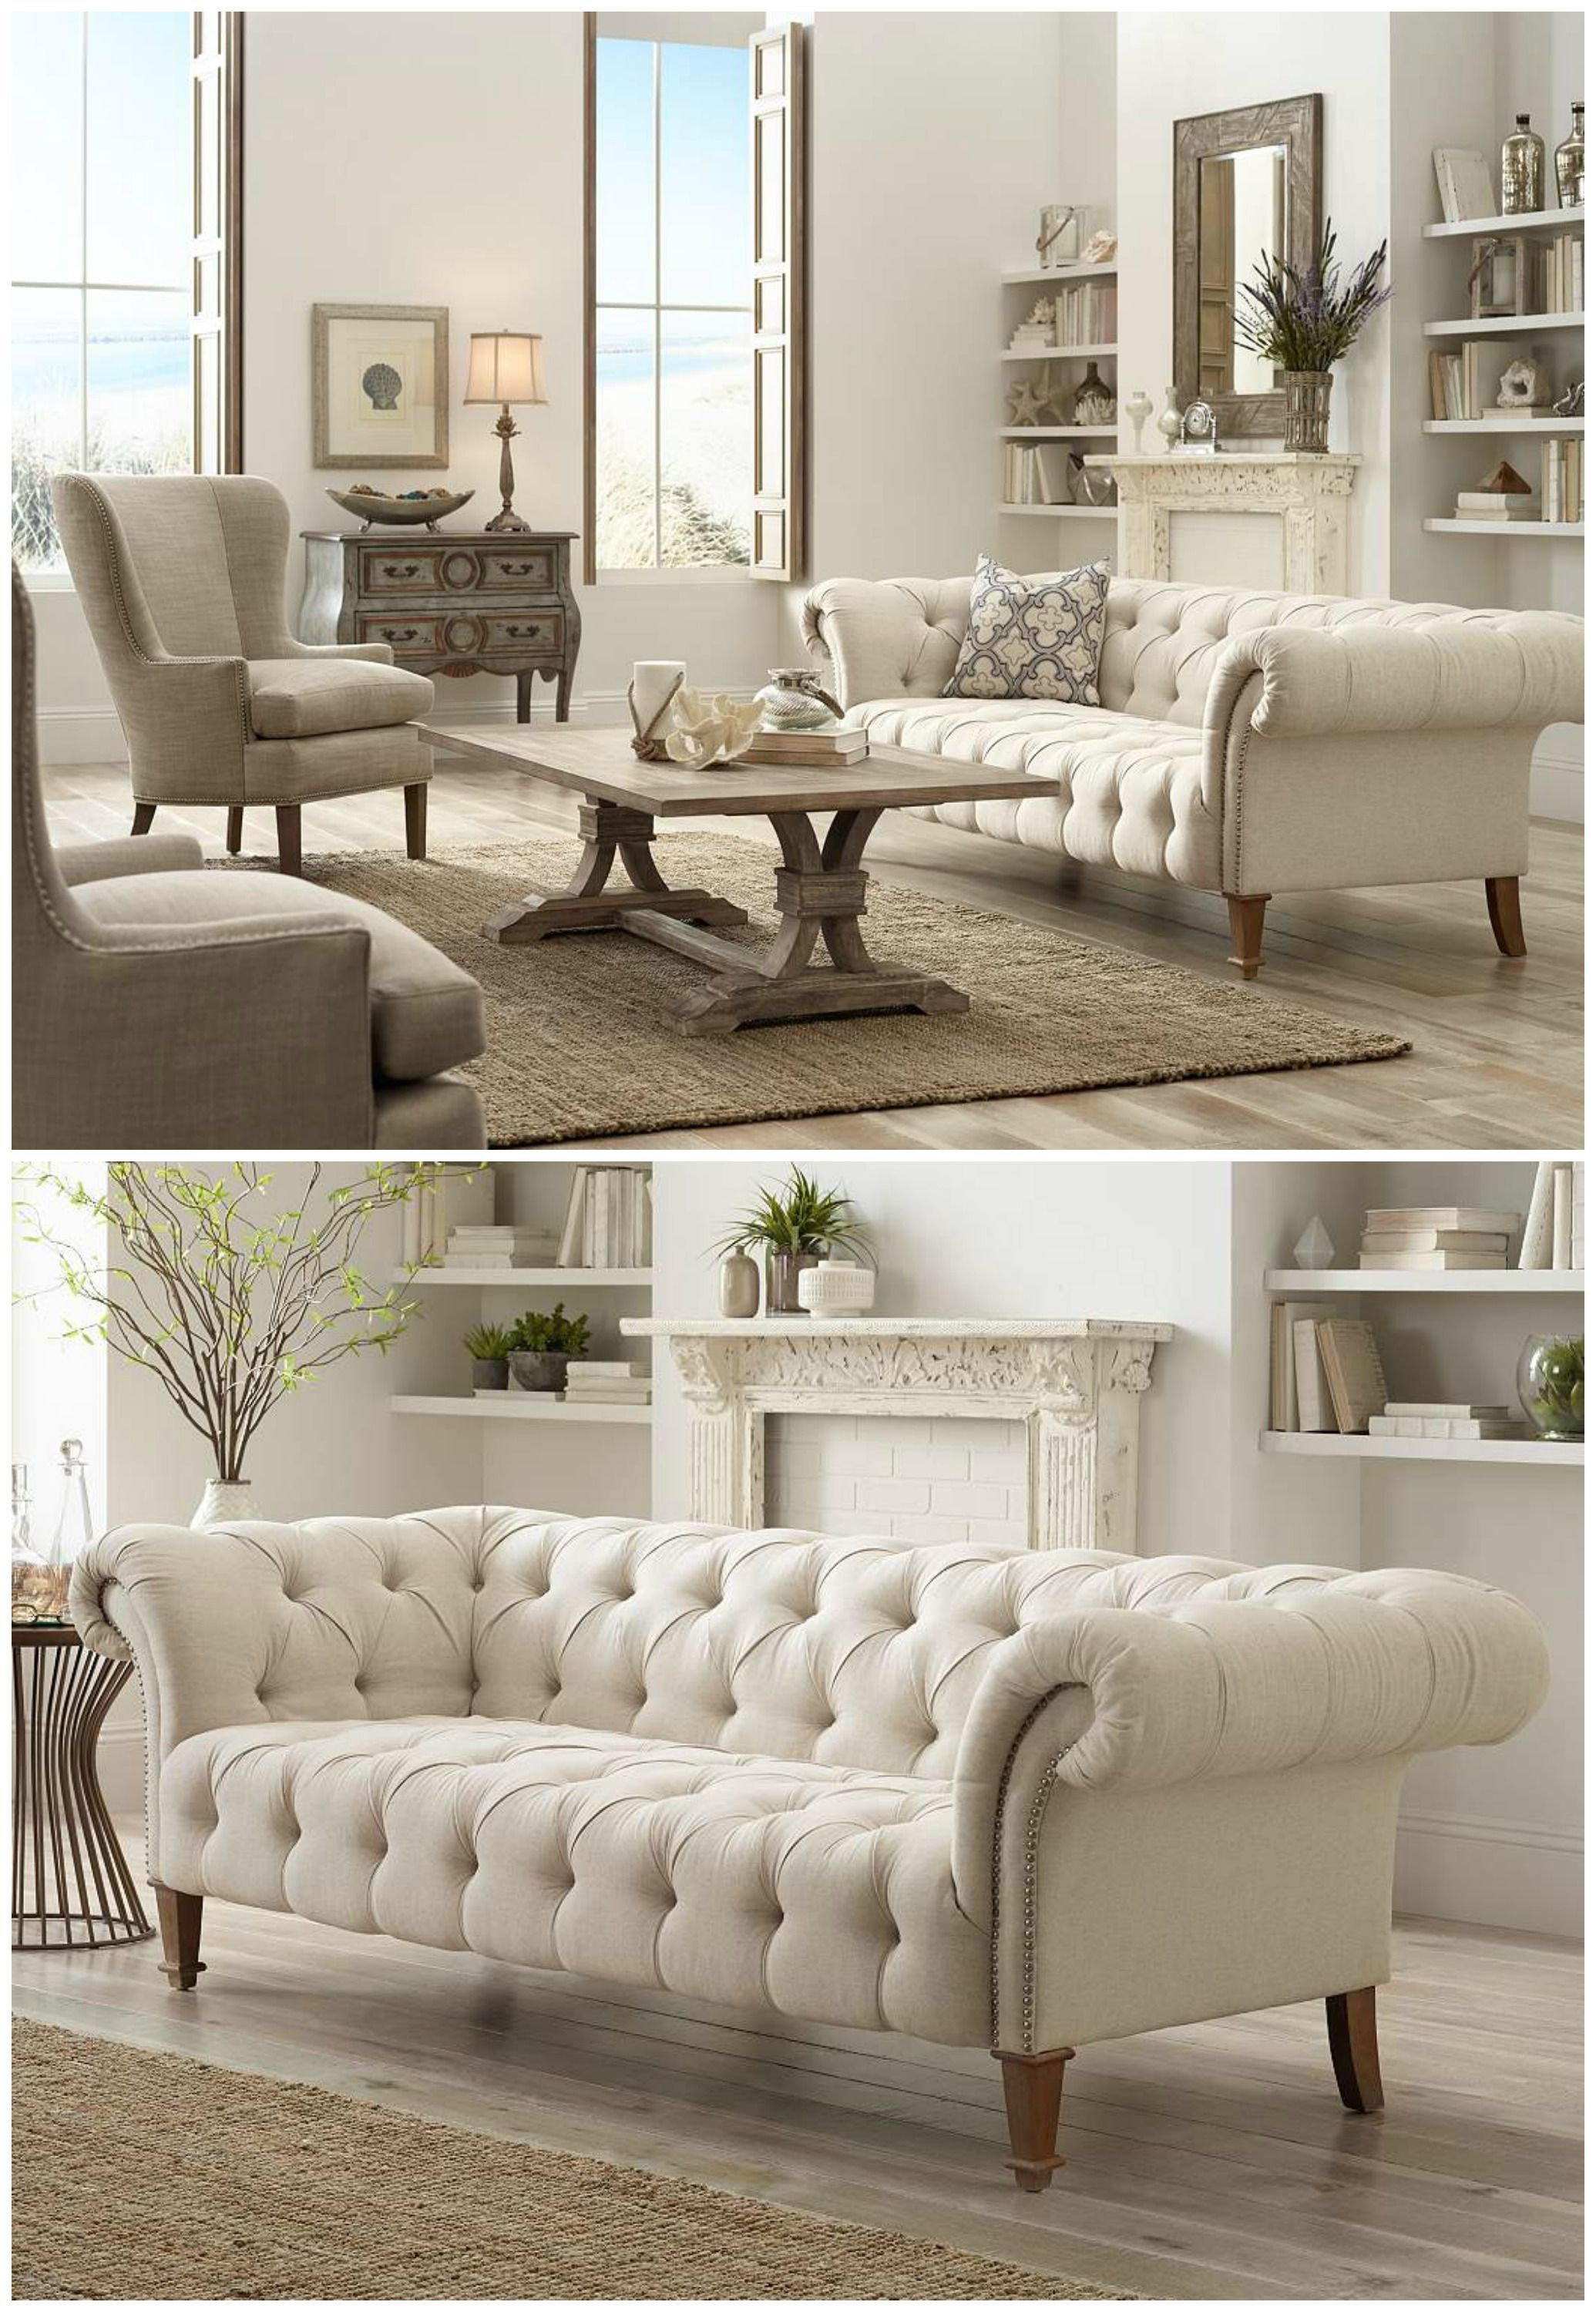 Tessa 90 3 4 Wide Tufted Beige Linen French Sofa 2x200 Lamps Plus In 2020 Living Room Decor Cozy Shabby Chic Sofa Living Room Sofa Design